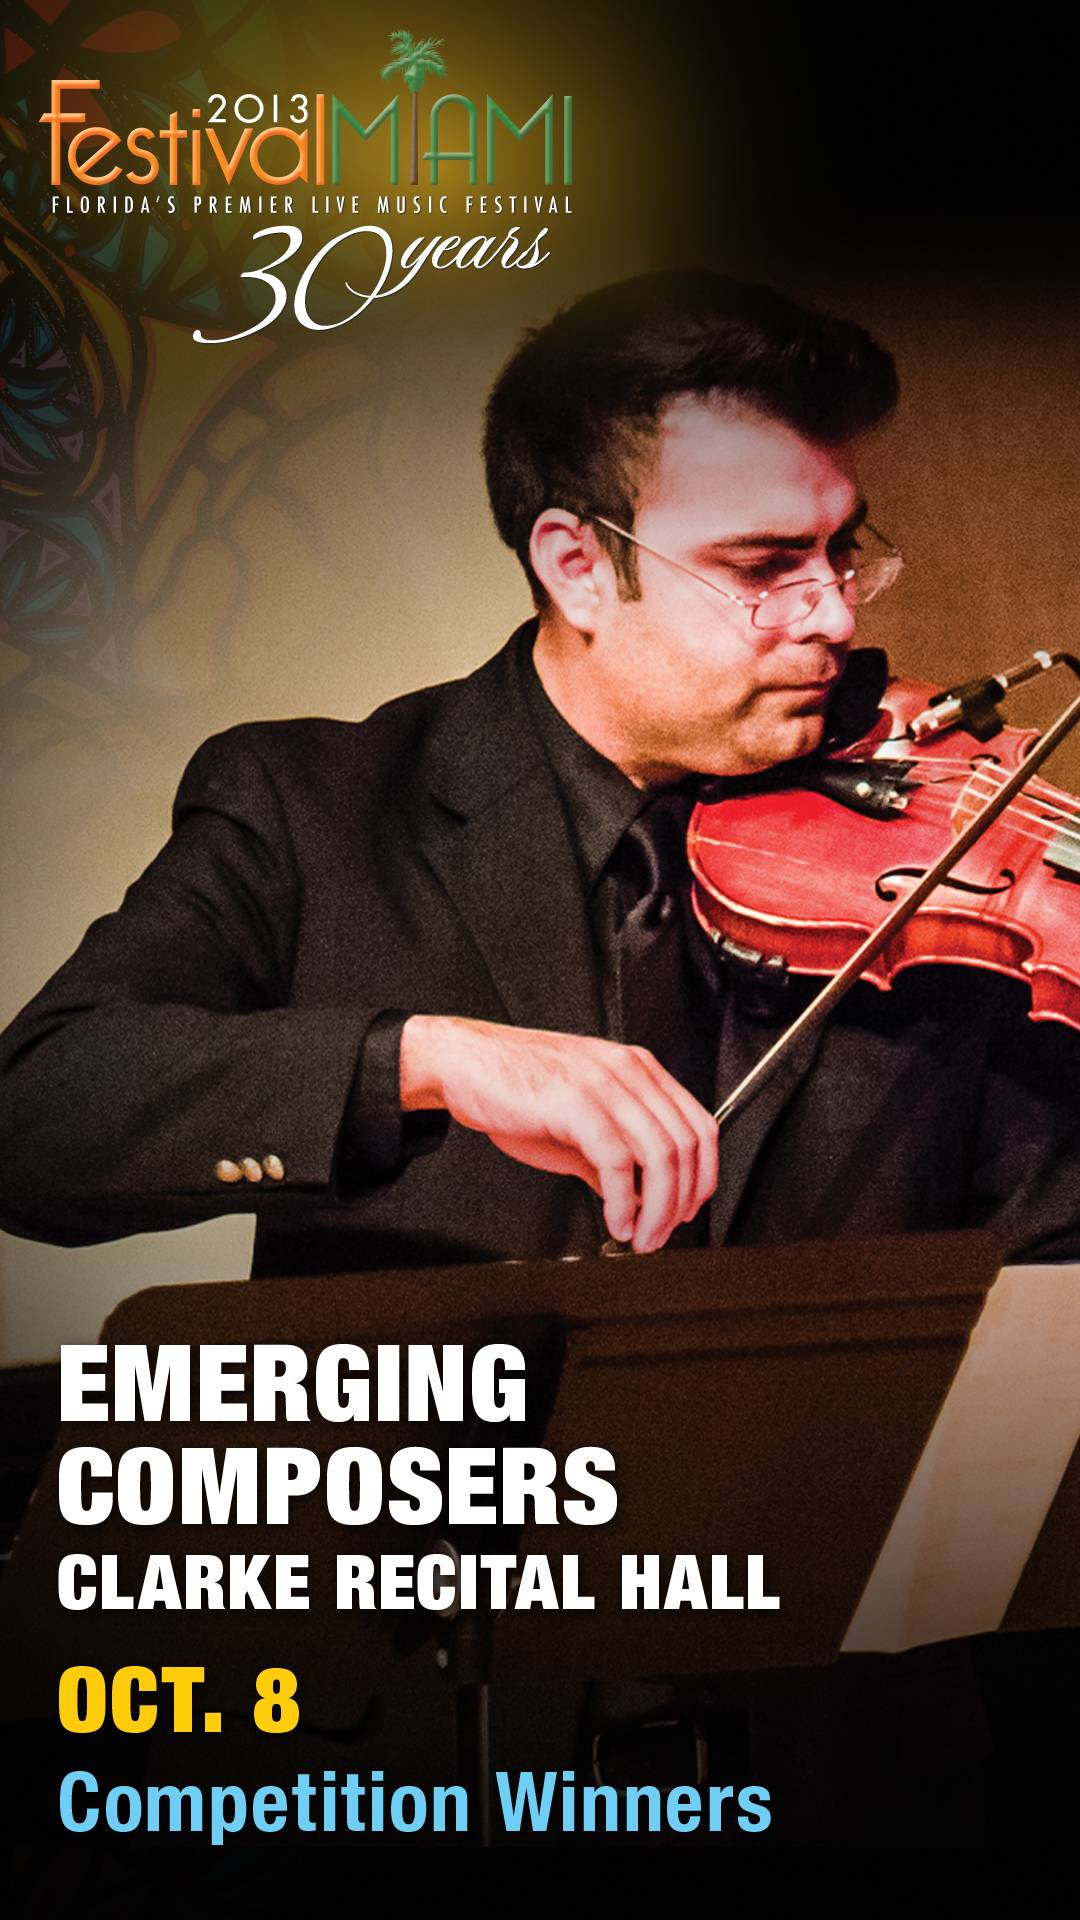 Emerging Composers Concert